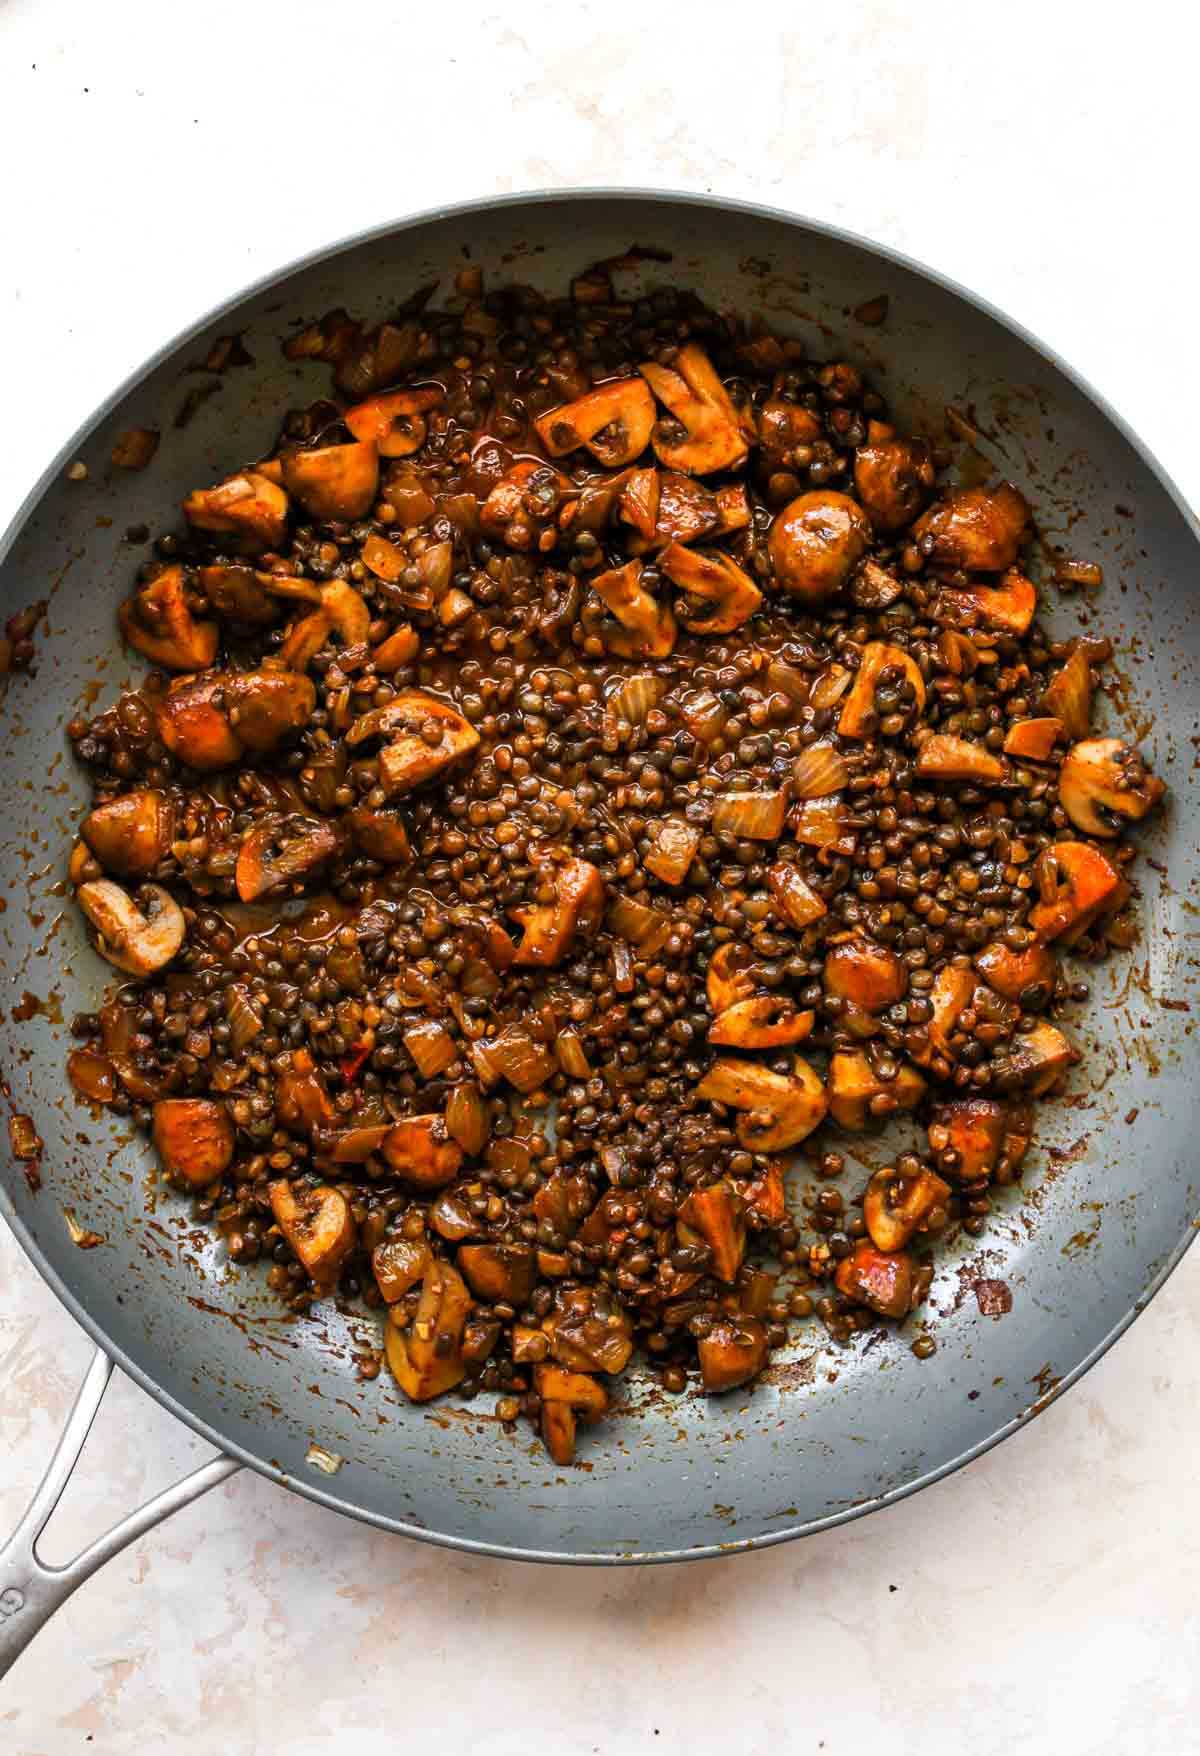 Mushrooms and lentils simmering in a skillet